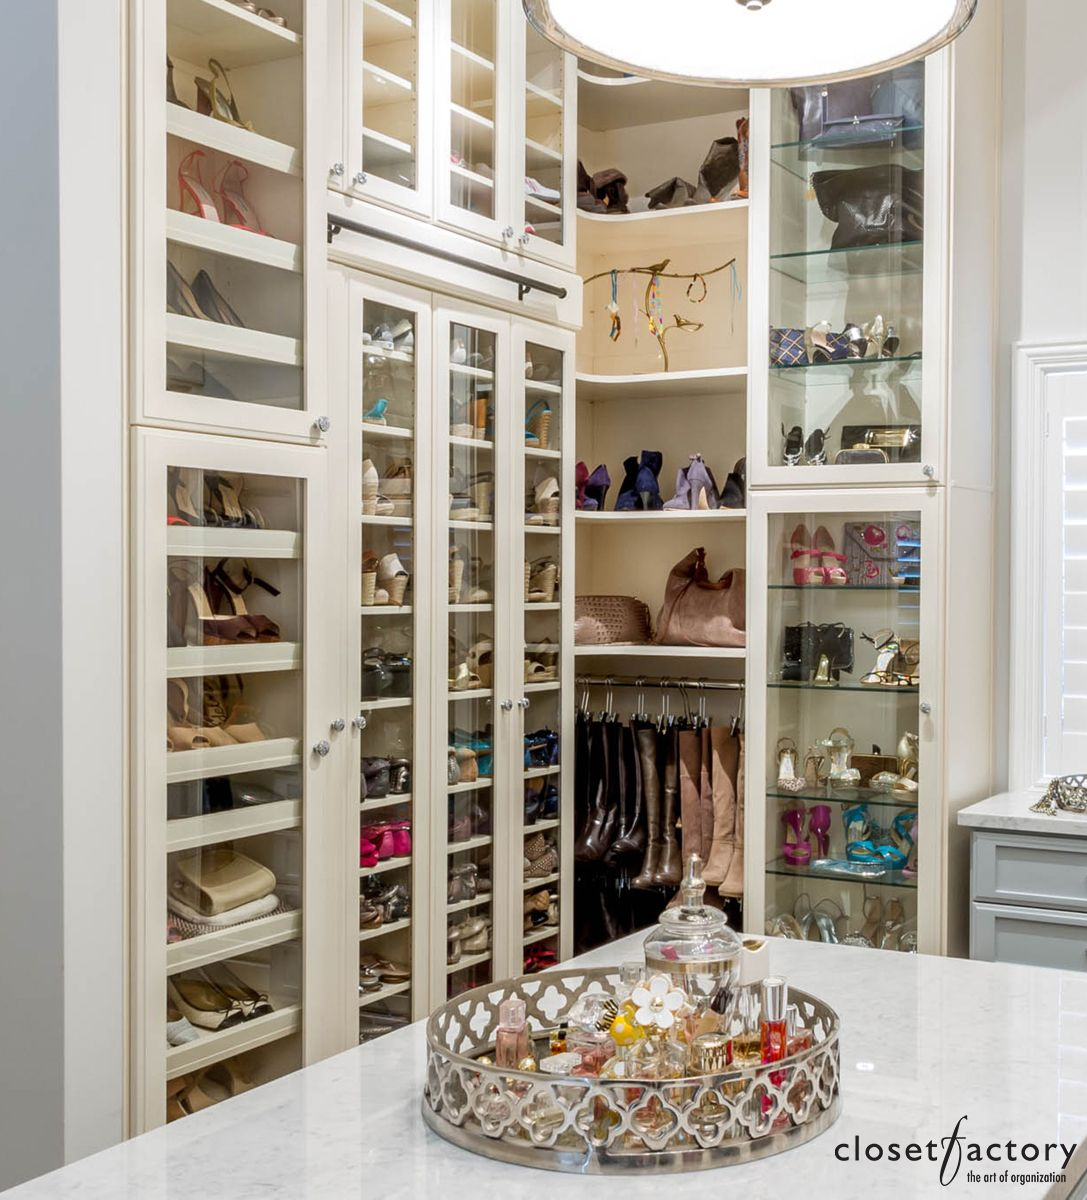 Exceptional Closet Factory Specializes In The Design And Installation Of Custom Closets,  Offices, Cabinetry, And More. FREE Consultations Throughout The Houston  Area!